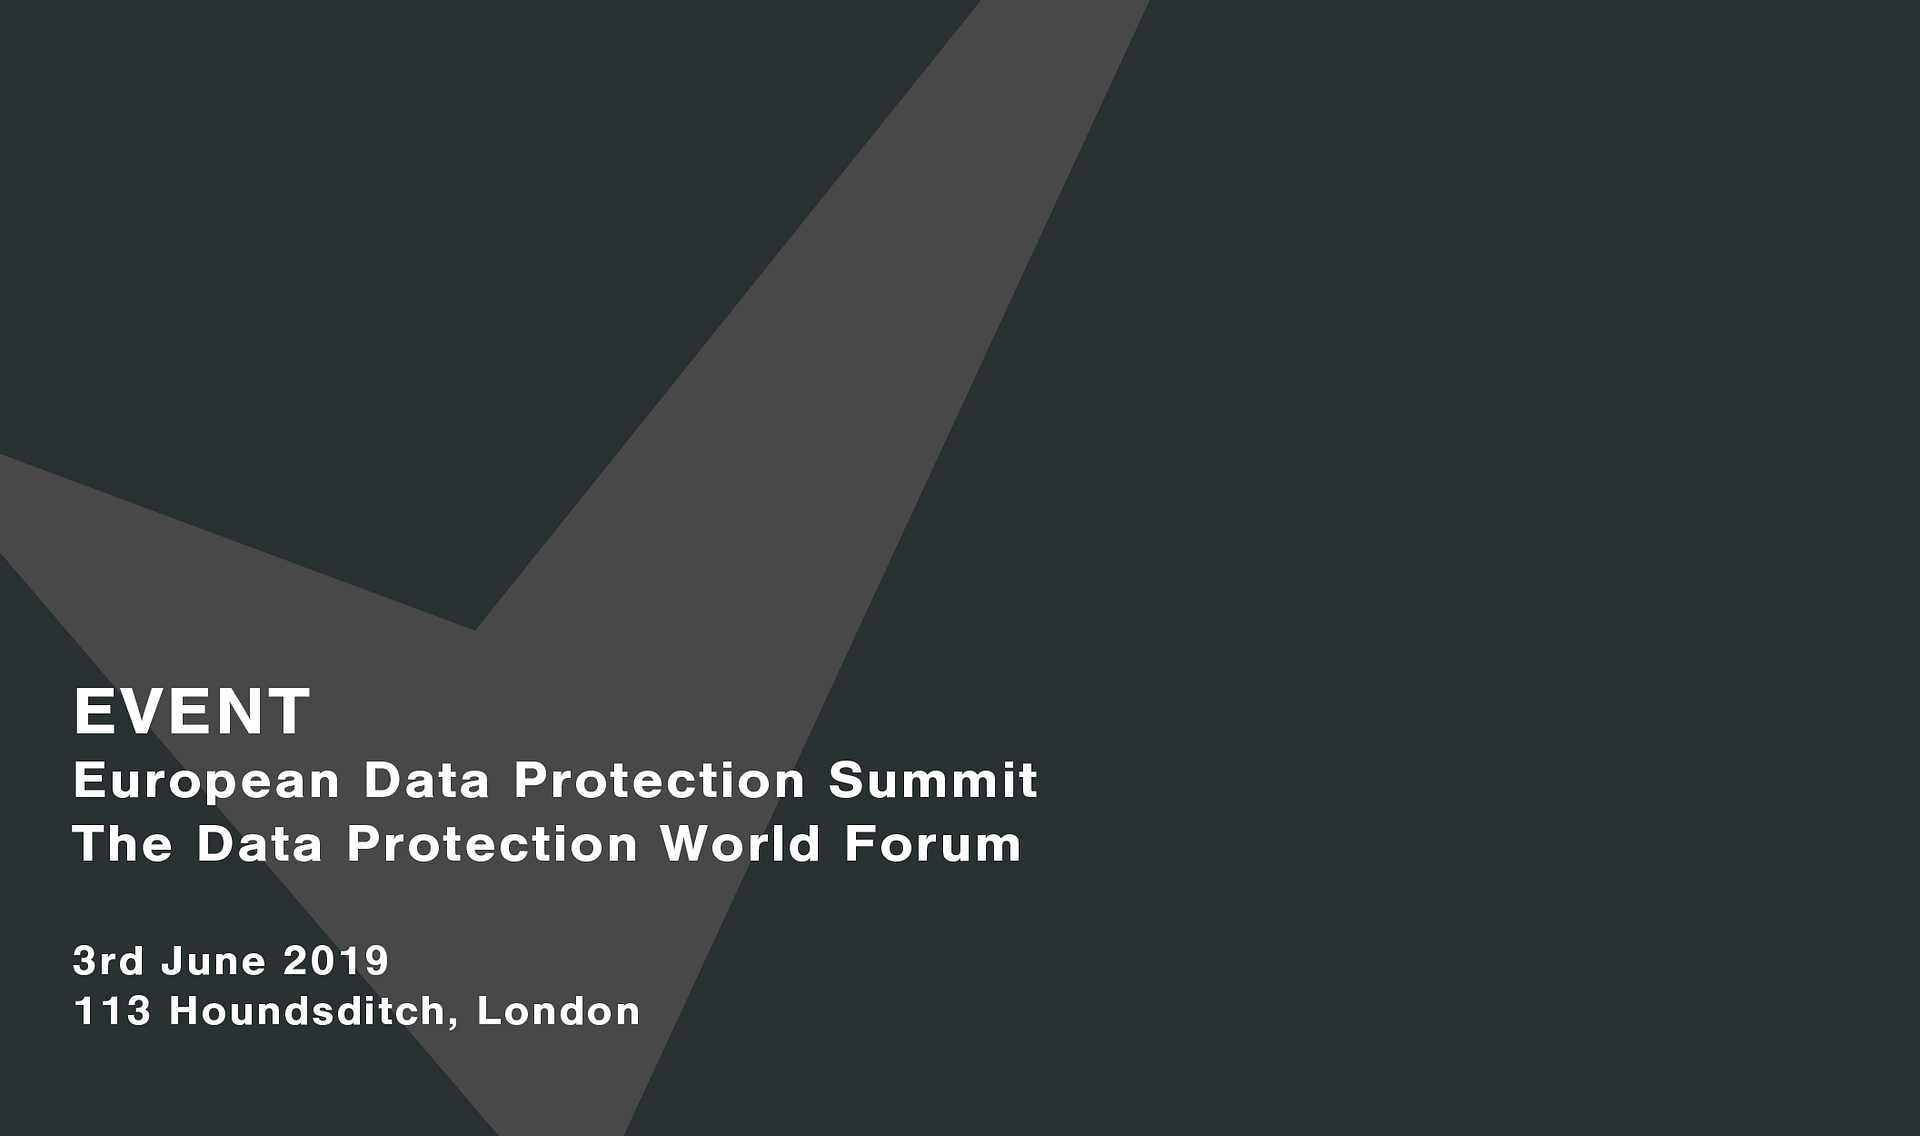 European-Data-Protection-Summit